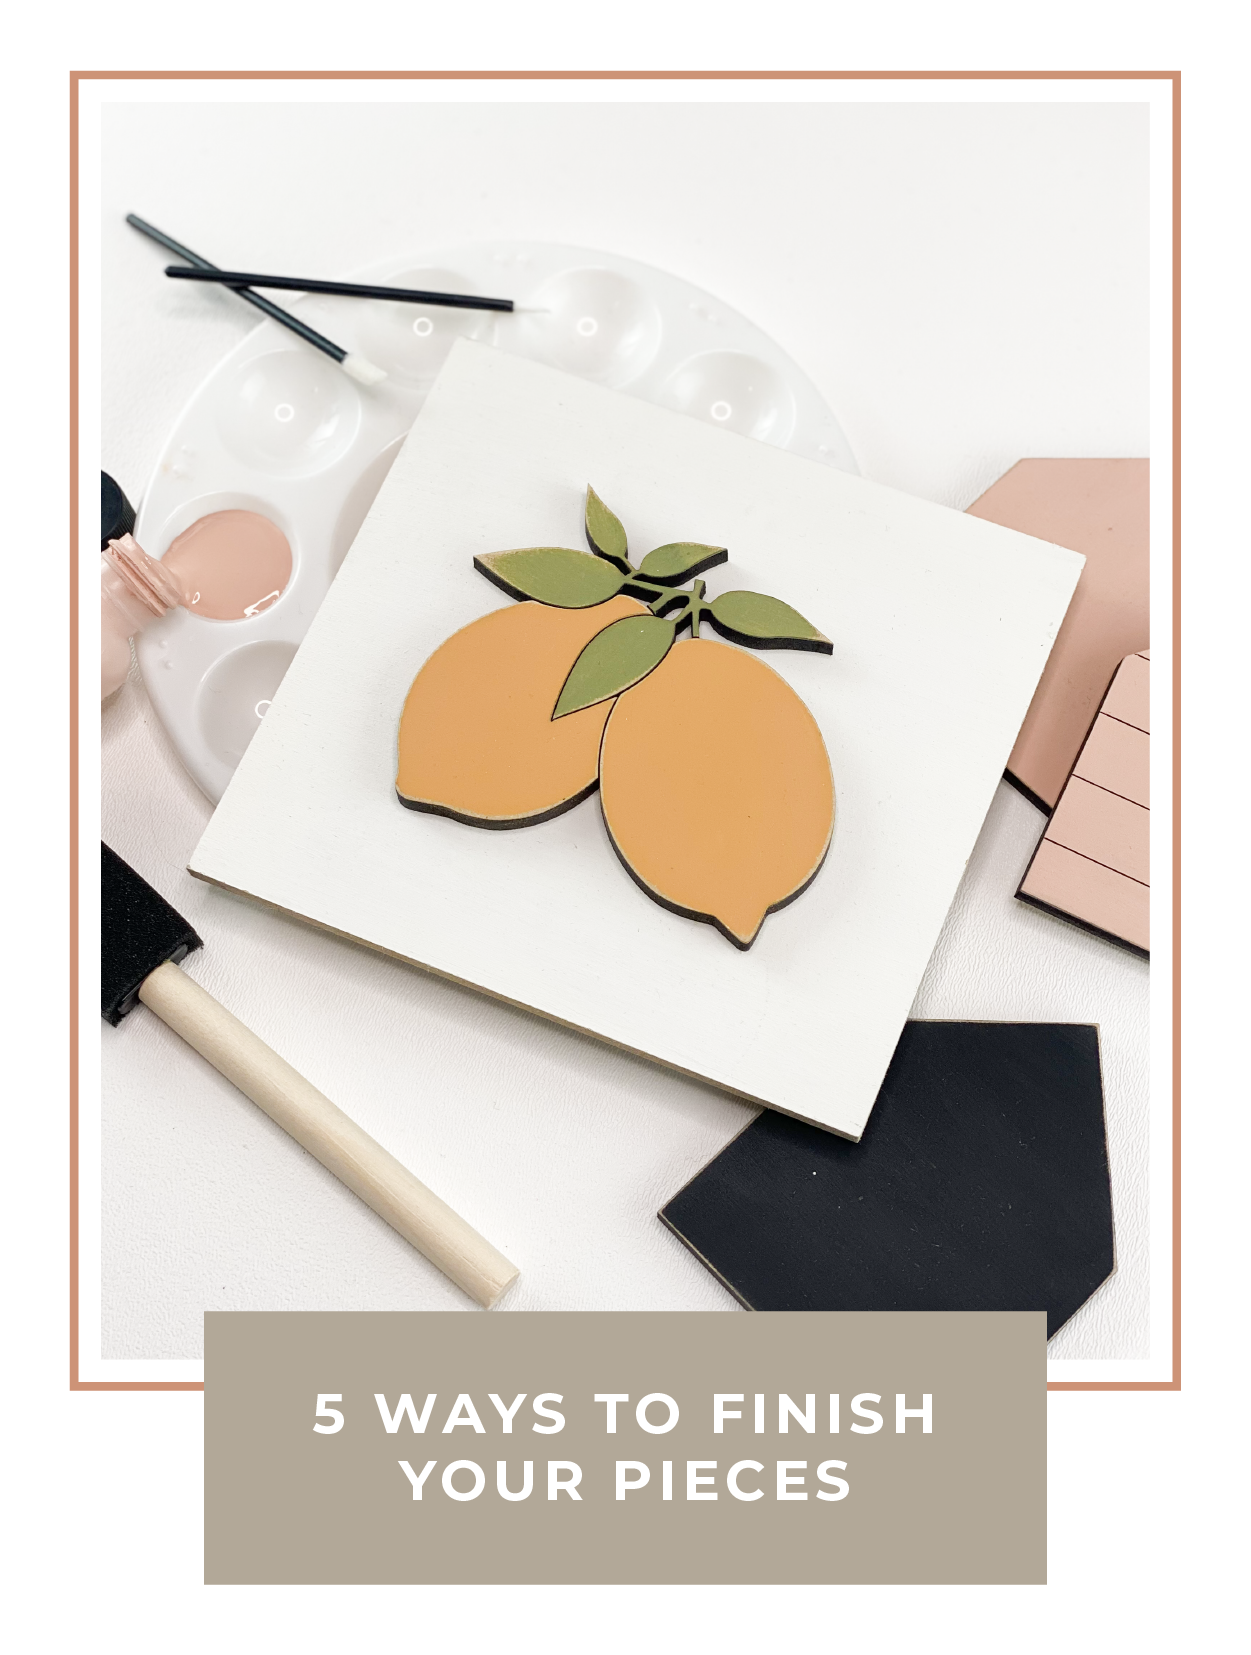 5 ways to finish your pieces